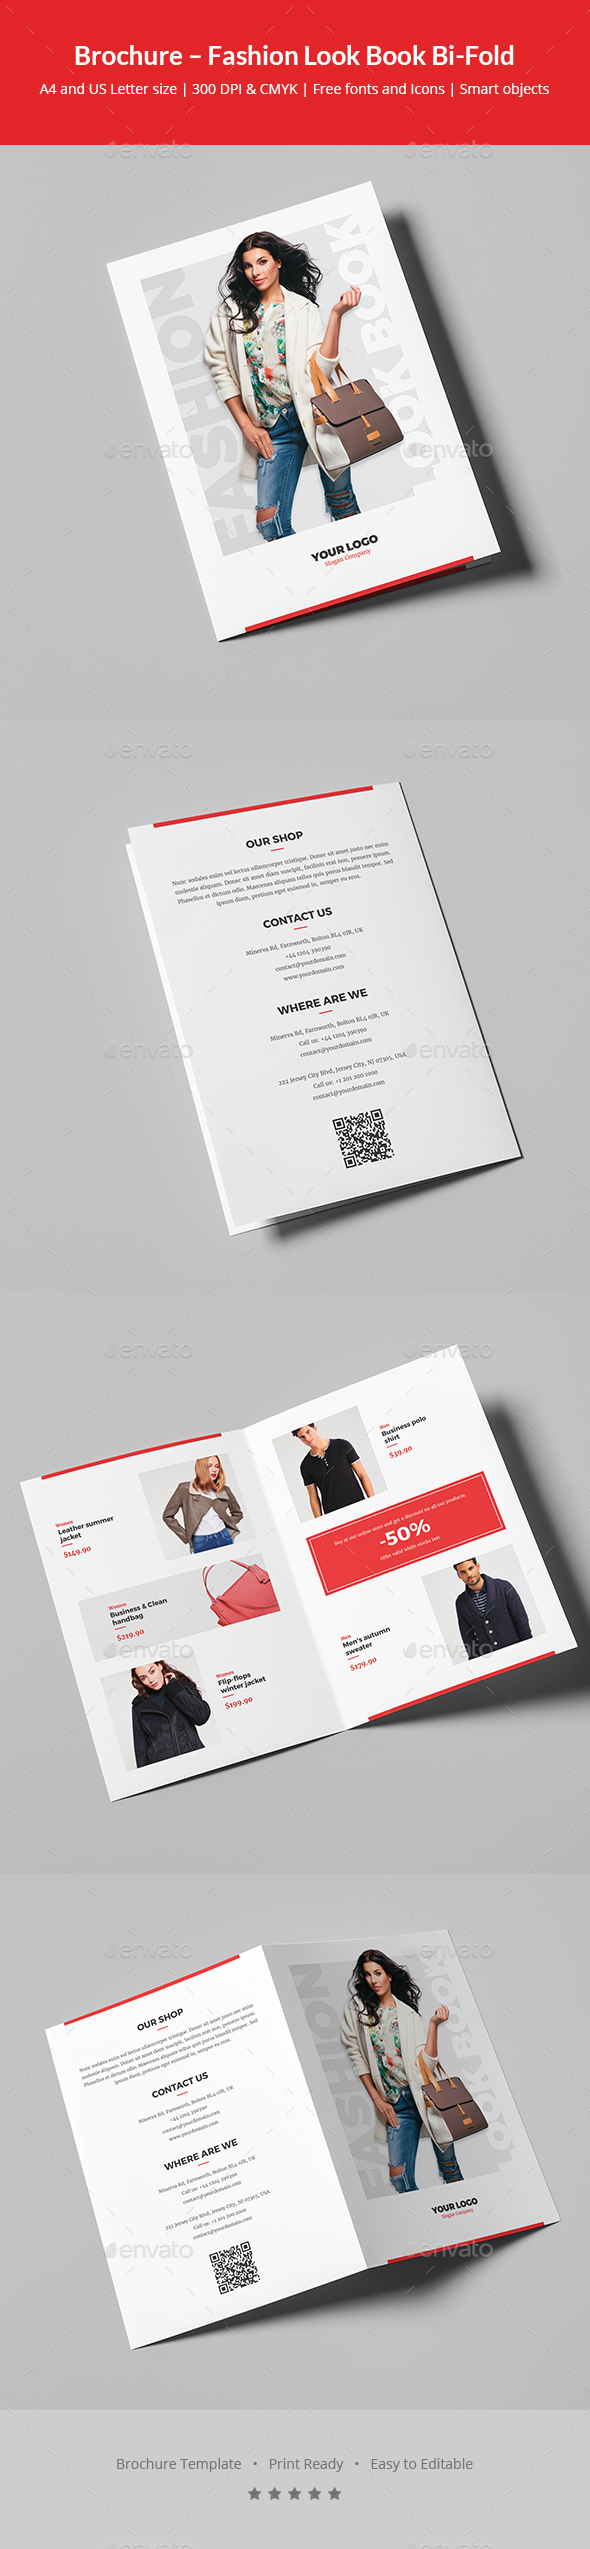 GraphicRiver Brochure Fashion Look Book Bi-Fold 20913361